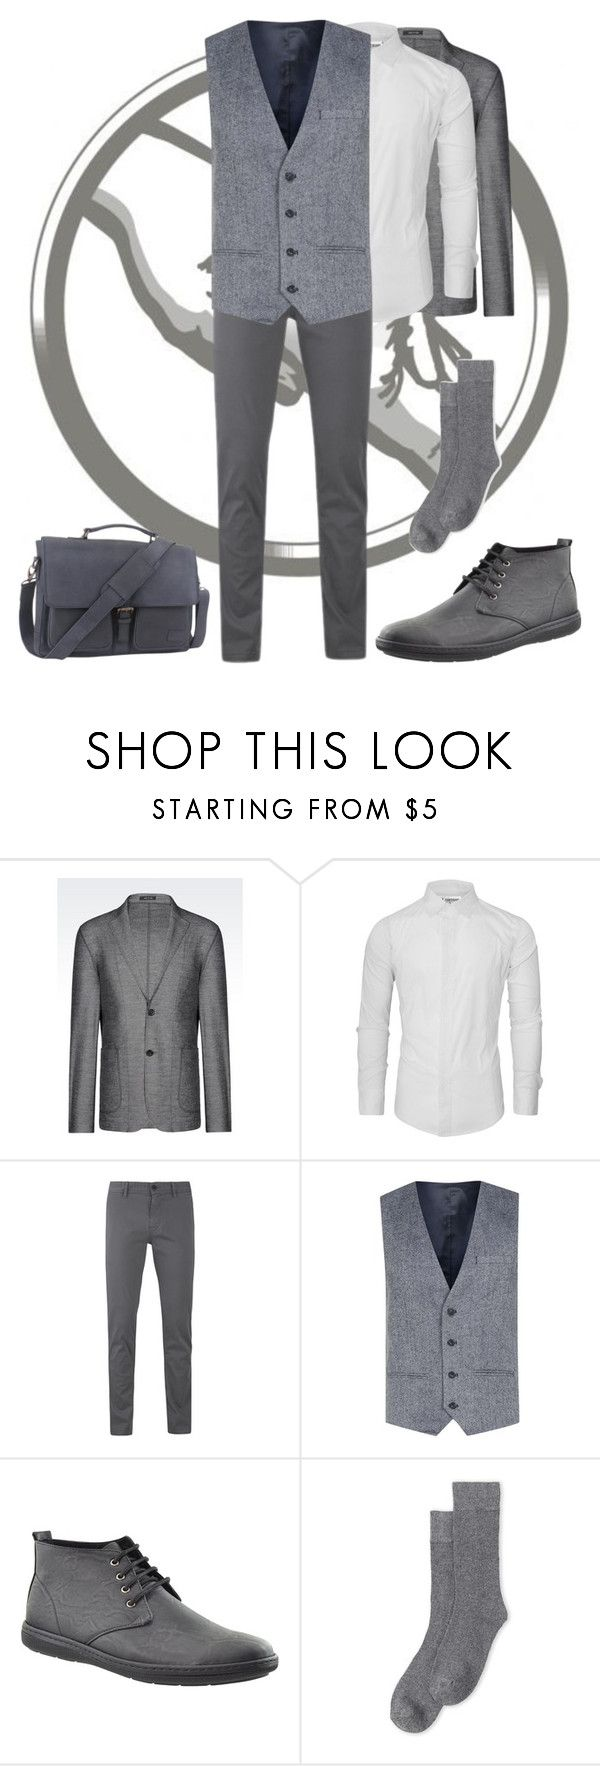 """Abnegation's Men's Outfit"" by keih95 ❤ liked on Polyvore featuring Emporio Armani, BOSS Orange, Topman, Lorenzo Uomo, The British Belt Company, men's fashion and menswear"